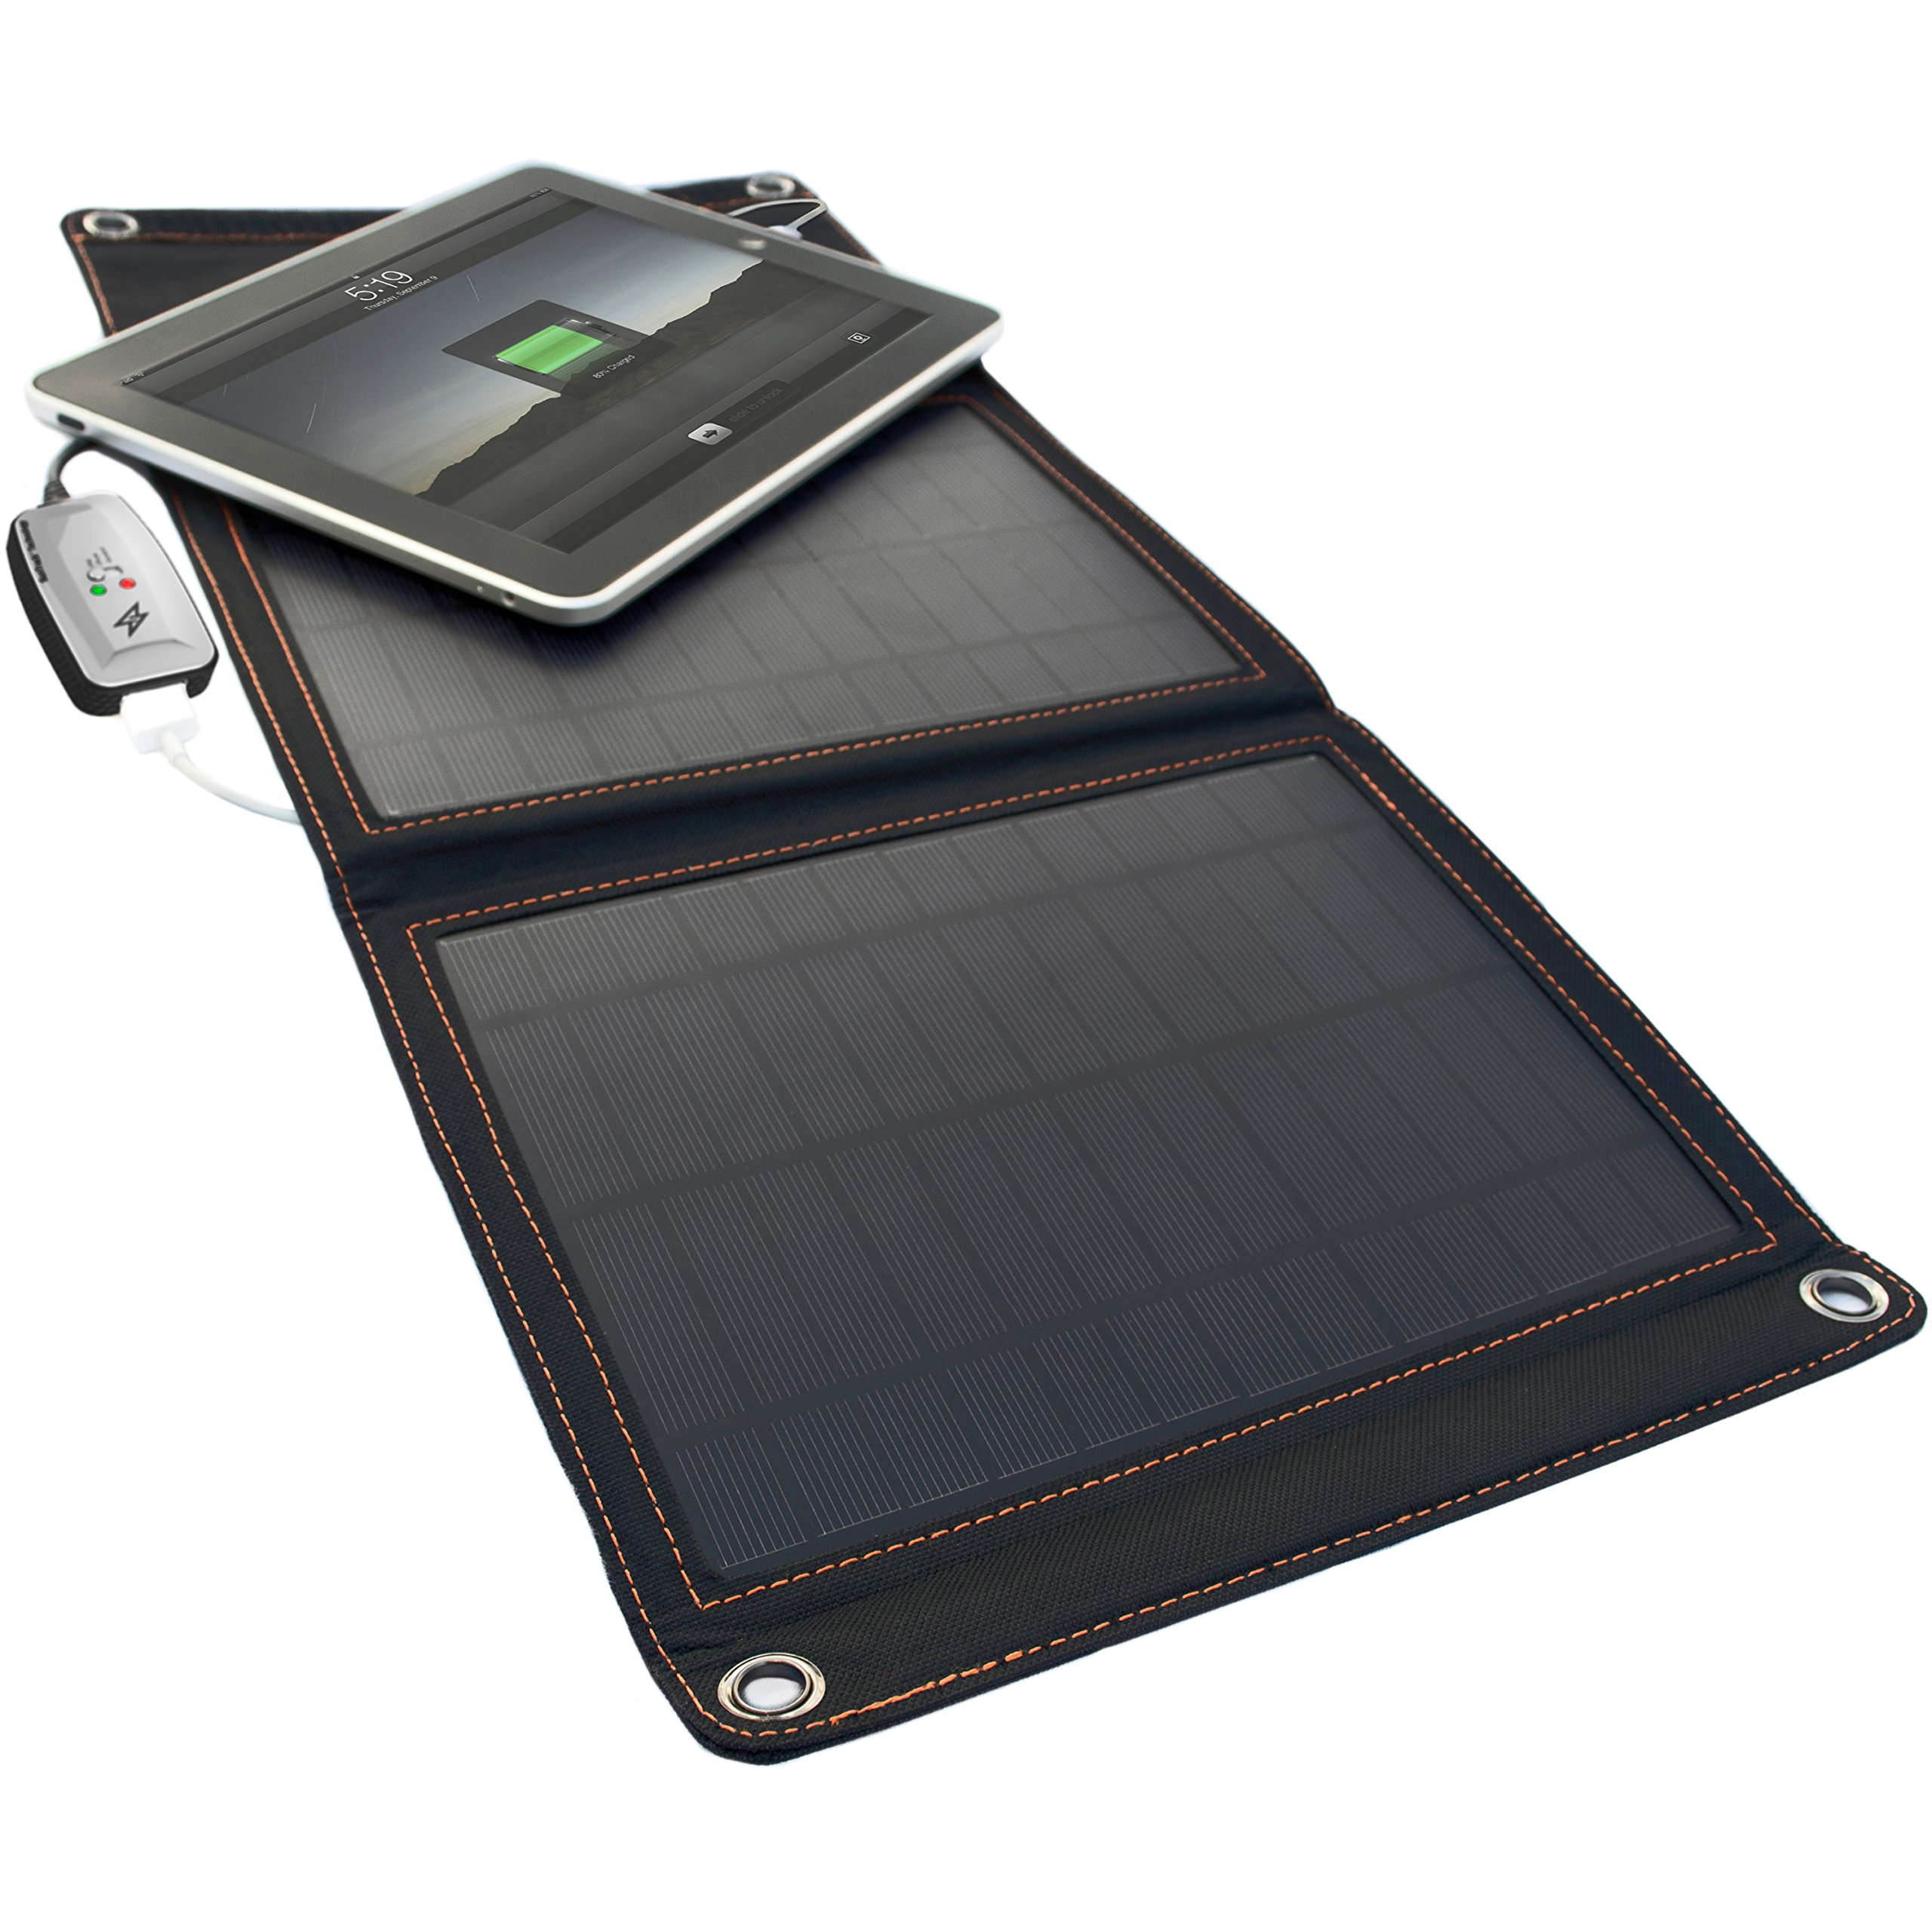 StrongVolt Portable Solar Charger with SunTrack Technology - 12 Watts